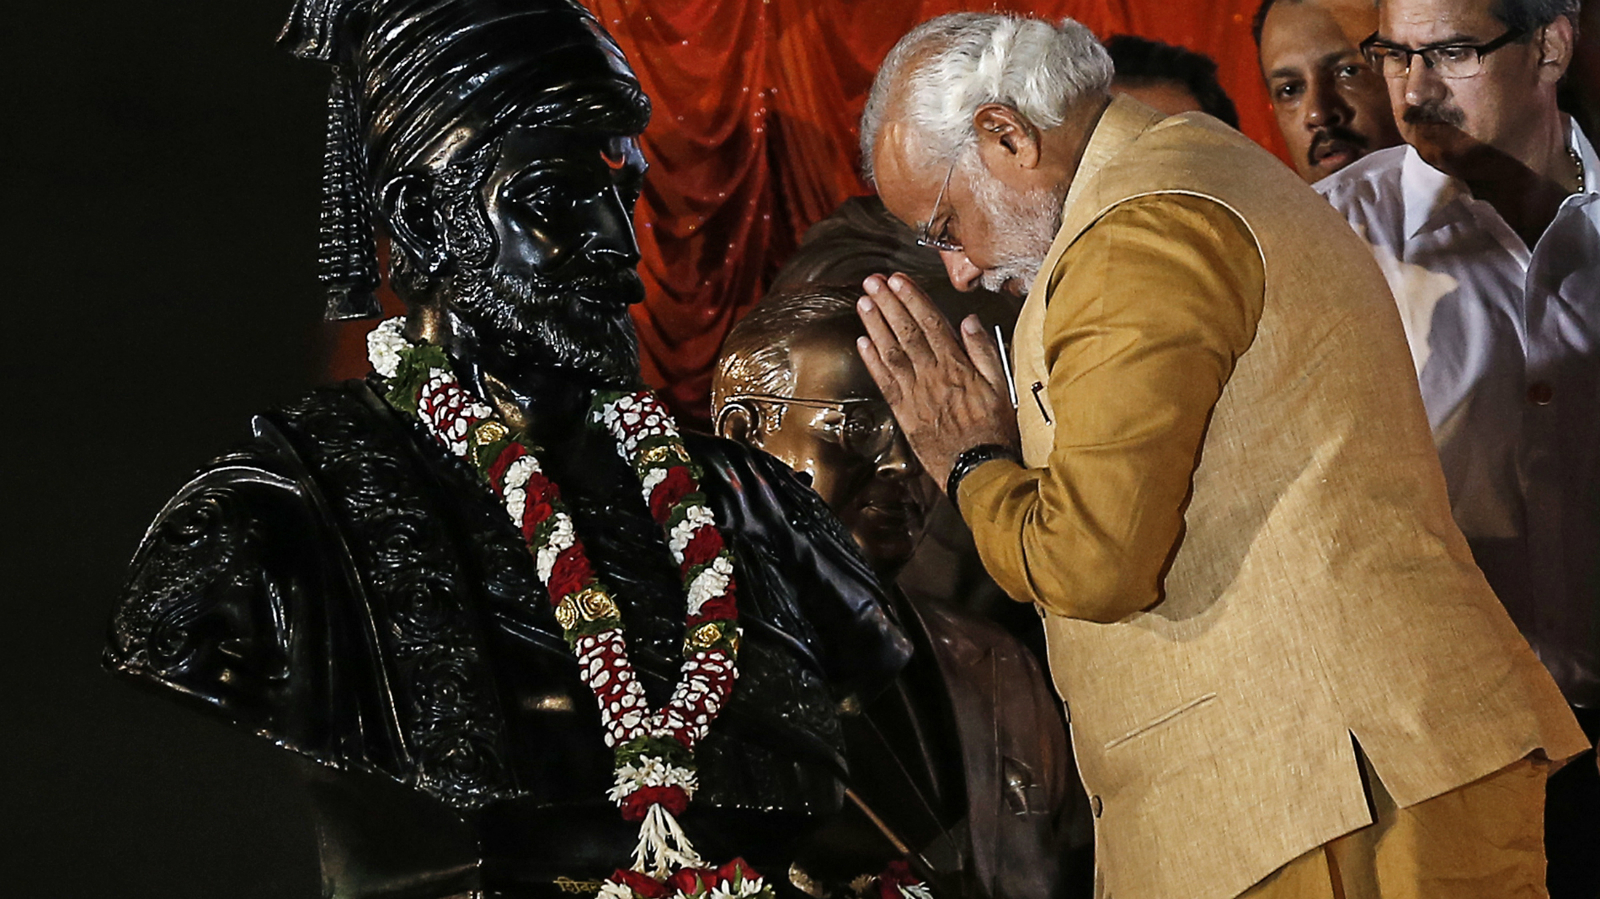 Hindu nationalist Narendra Modi, prime ministerial candidate for the main opposition Bharatiya Janata Party (BJP), gestures at the statue of Chhatrapati Shivaji, revered by many in western India as a Hindu warrior king, during an election campaign rally in Mumbai April 21, 2014. Around 815 million people have registered to vote in the world's biggest election - a number exceeding the population of Europe and a world record - and results of the mammoth exercise, which concludes on May 12, are due on May 16.